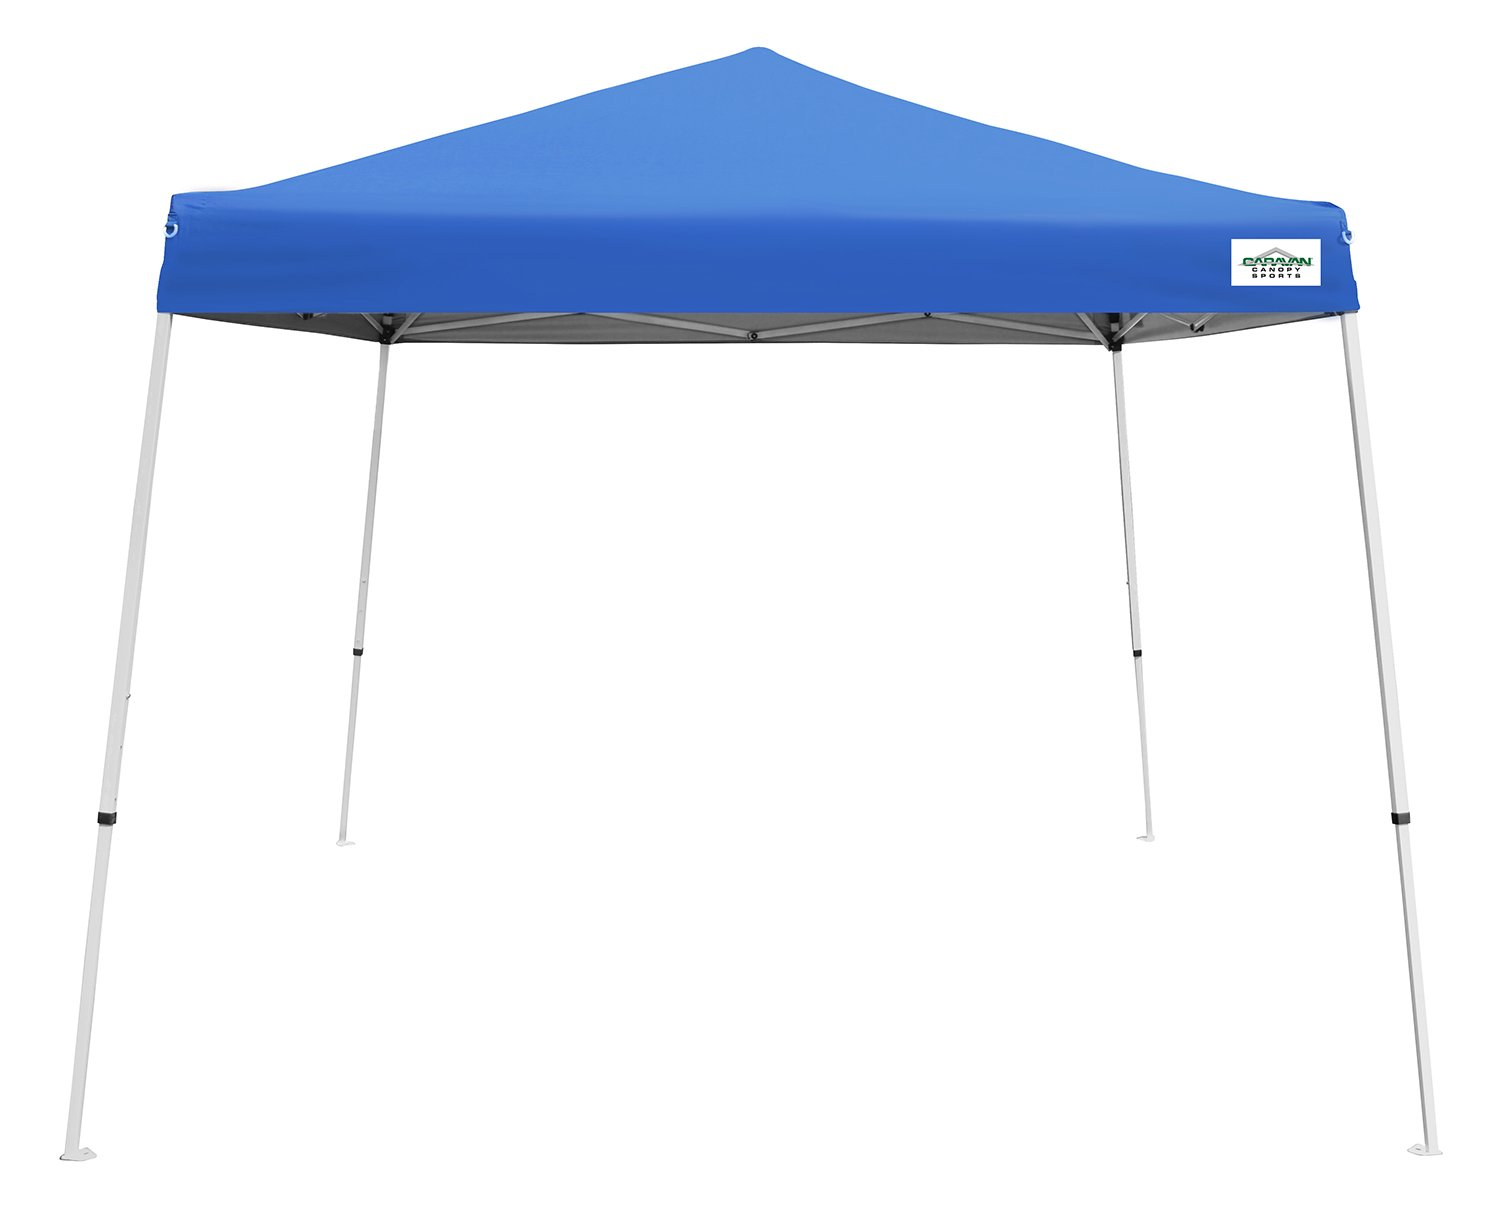 Amazon.com Caravan Canopy V-Series 2 Slant Leg 12 X 12 Foot Canopy Kit Blue Garden u0026 Outdoor  sc 1 st  Amazon.com & Amazon.com: Caravan Canopy V-Series 2 Slant Leg 12 X 12 Foot ...